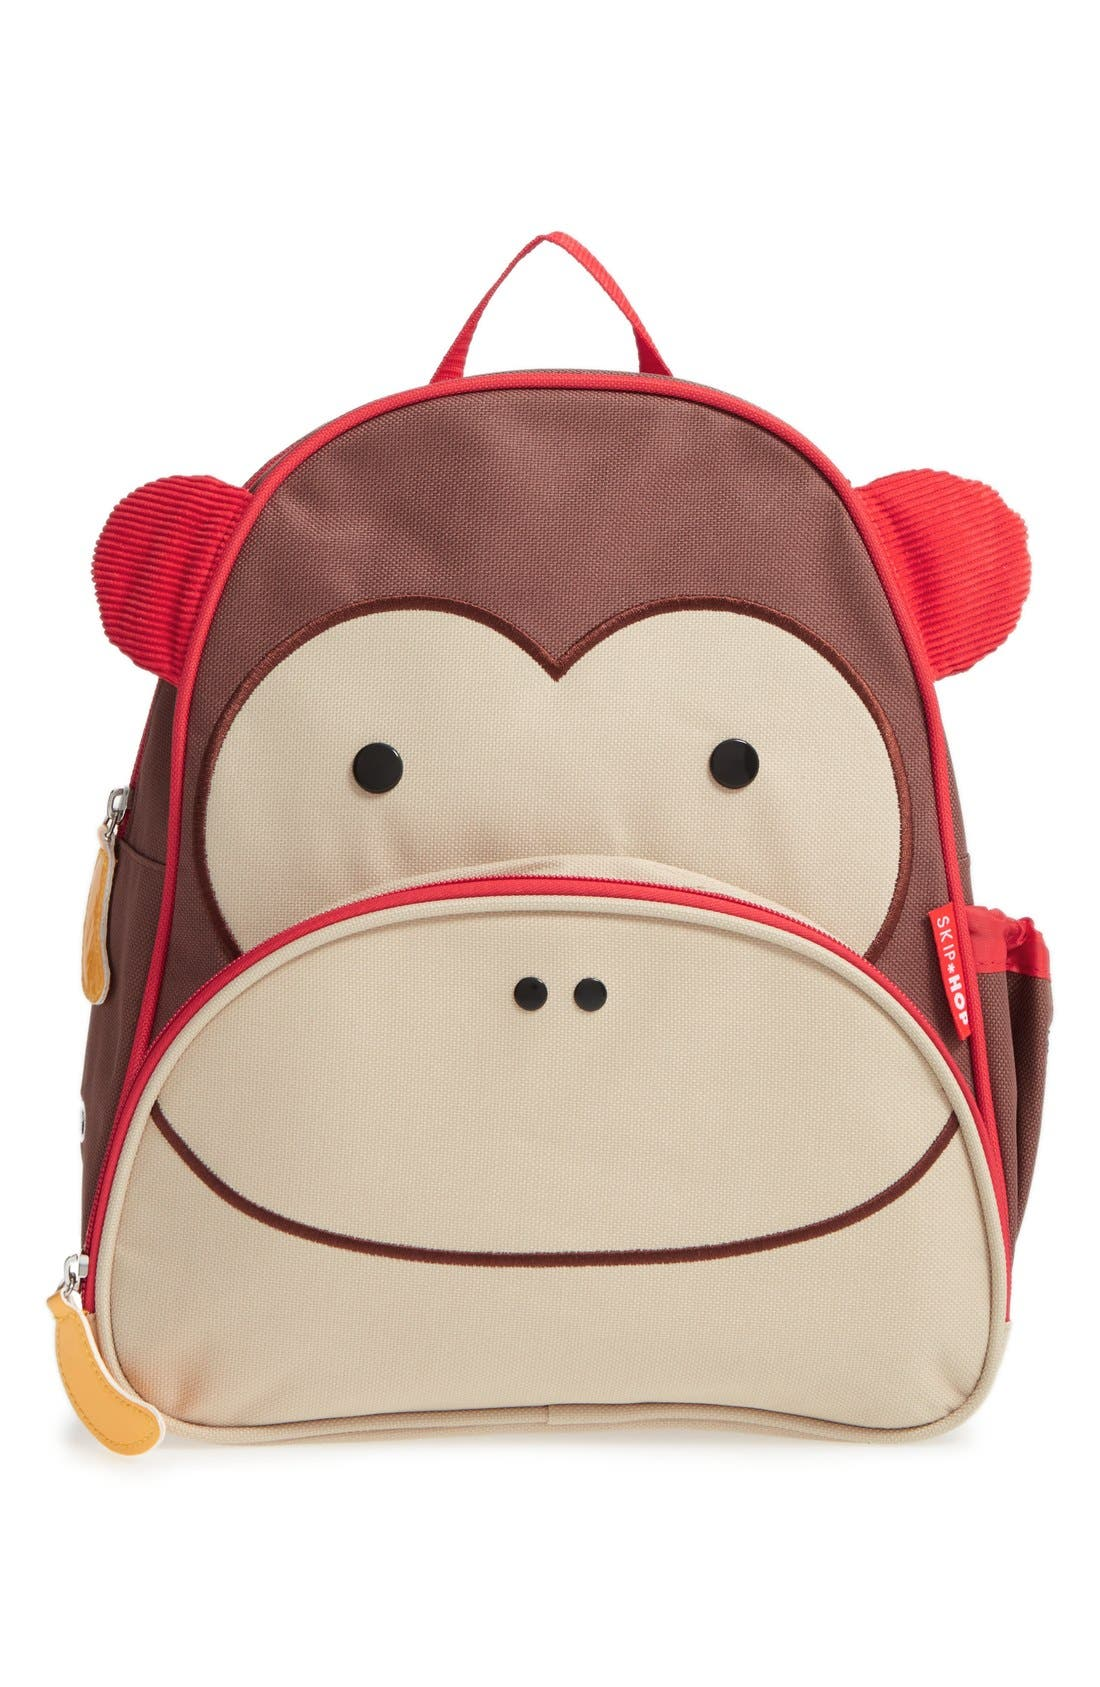 Zoo Pack Backpack,                         Main,                         color, BROWN